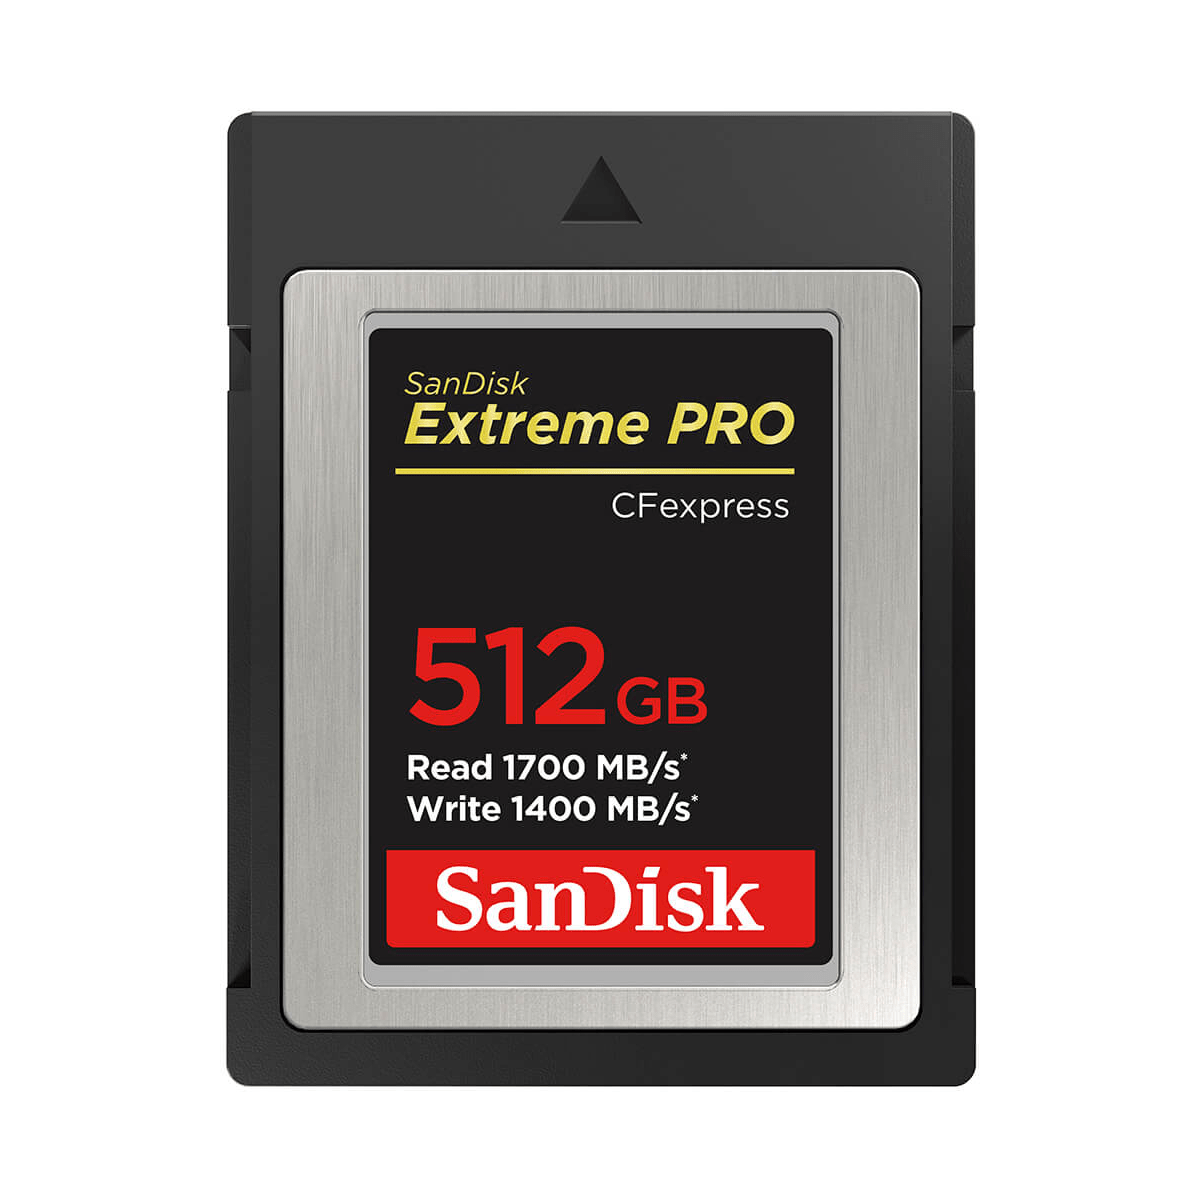 Sandisk Extreme Pro Type B CFexpress 512GB